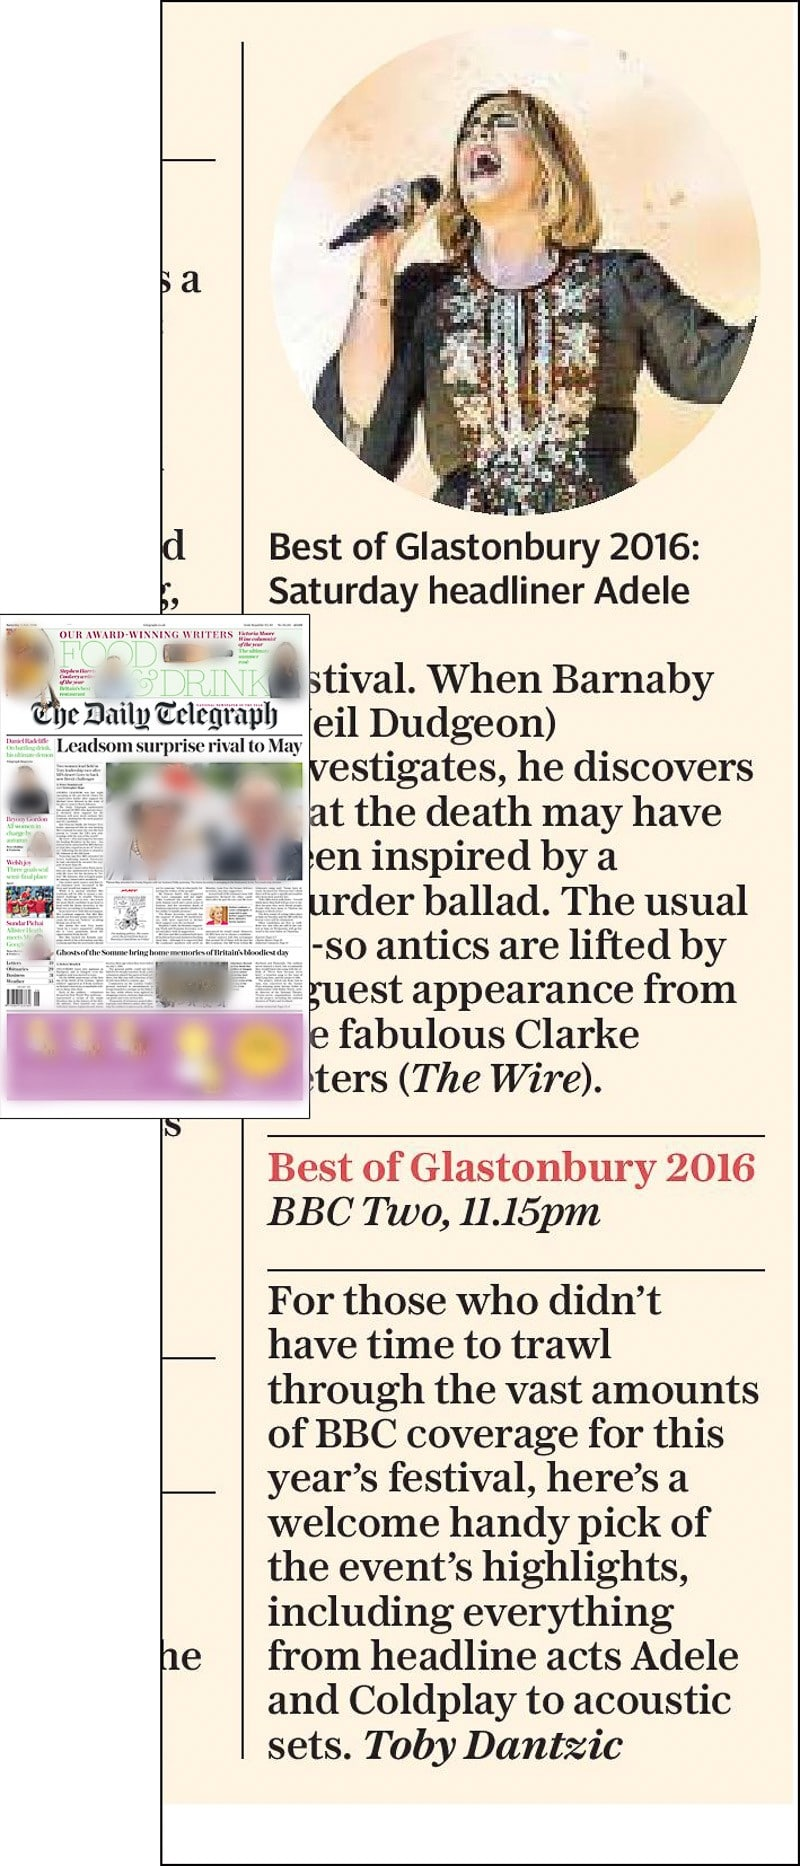 Image usage - The Daily Telegraph print newspaper 2 July 2016 - Adele performing live at Glastonbury Festival 2016